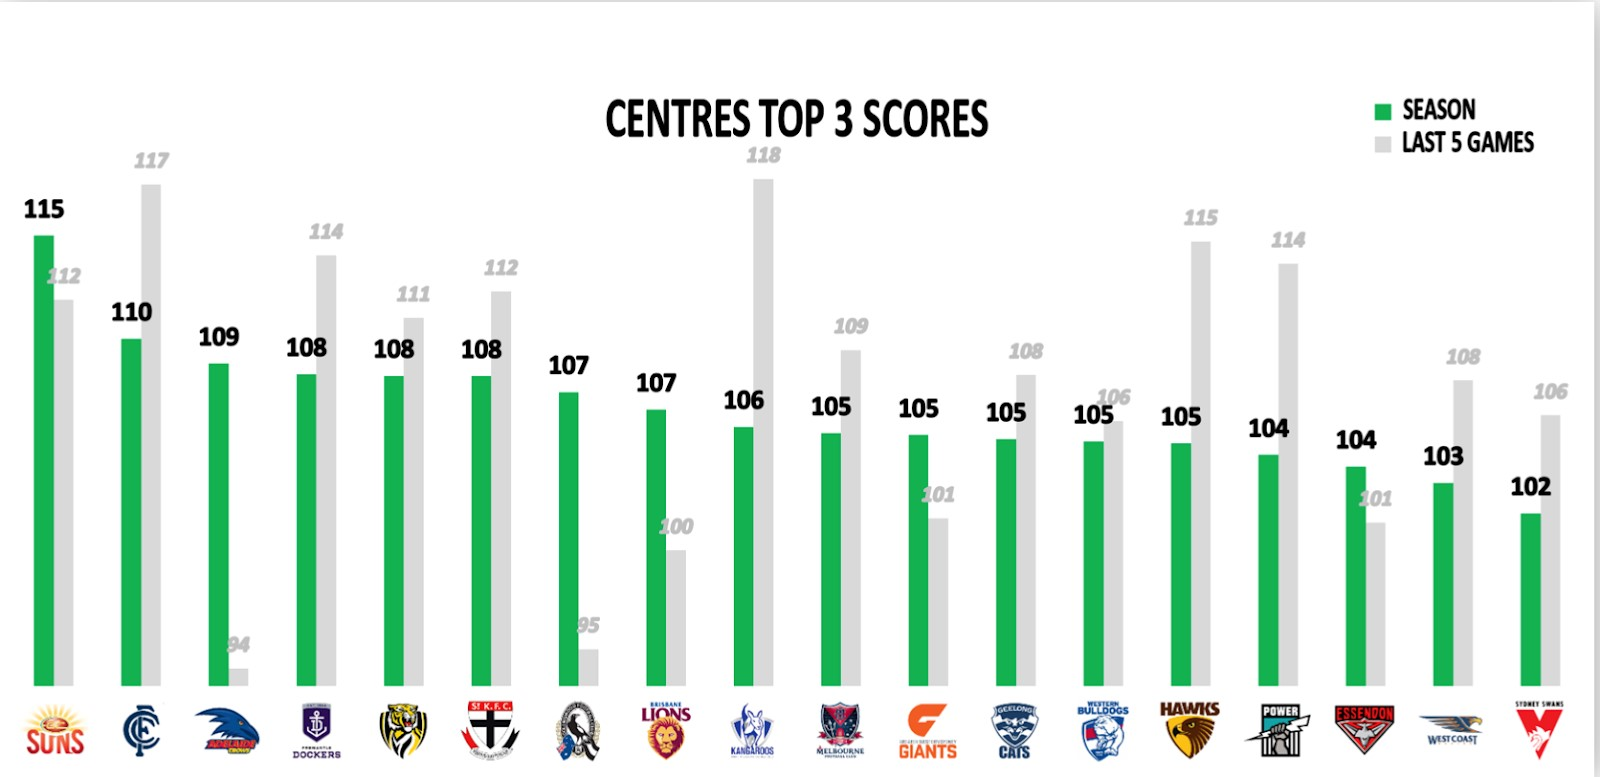 Points Against - Top 3 Centres